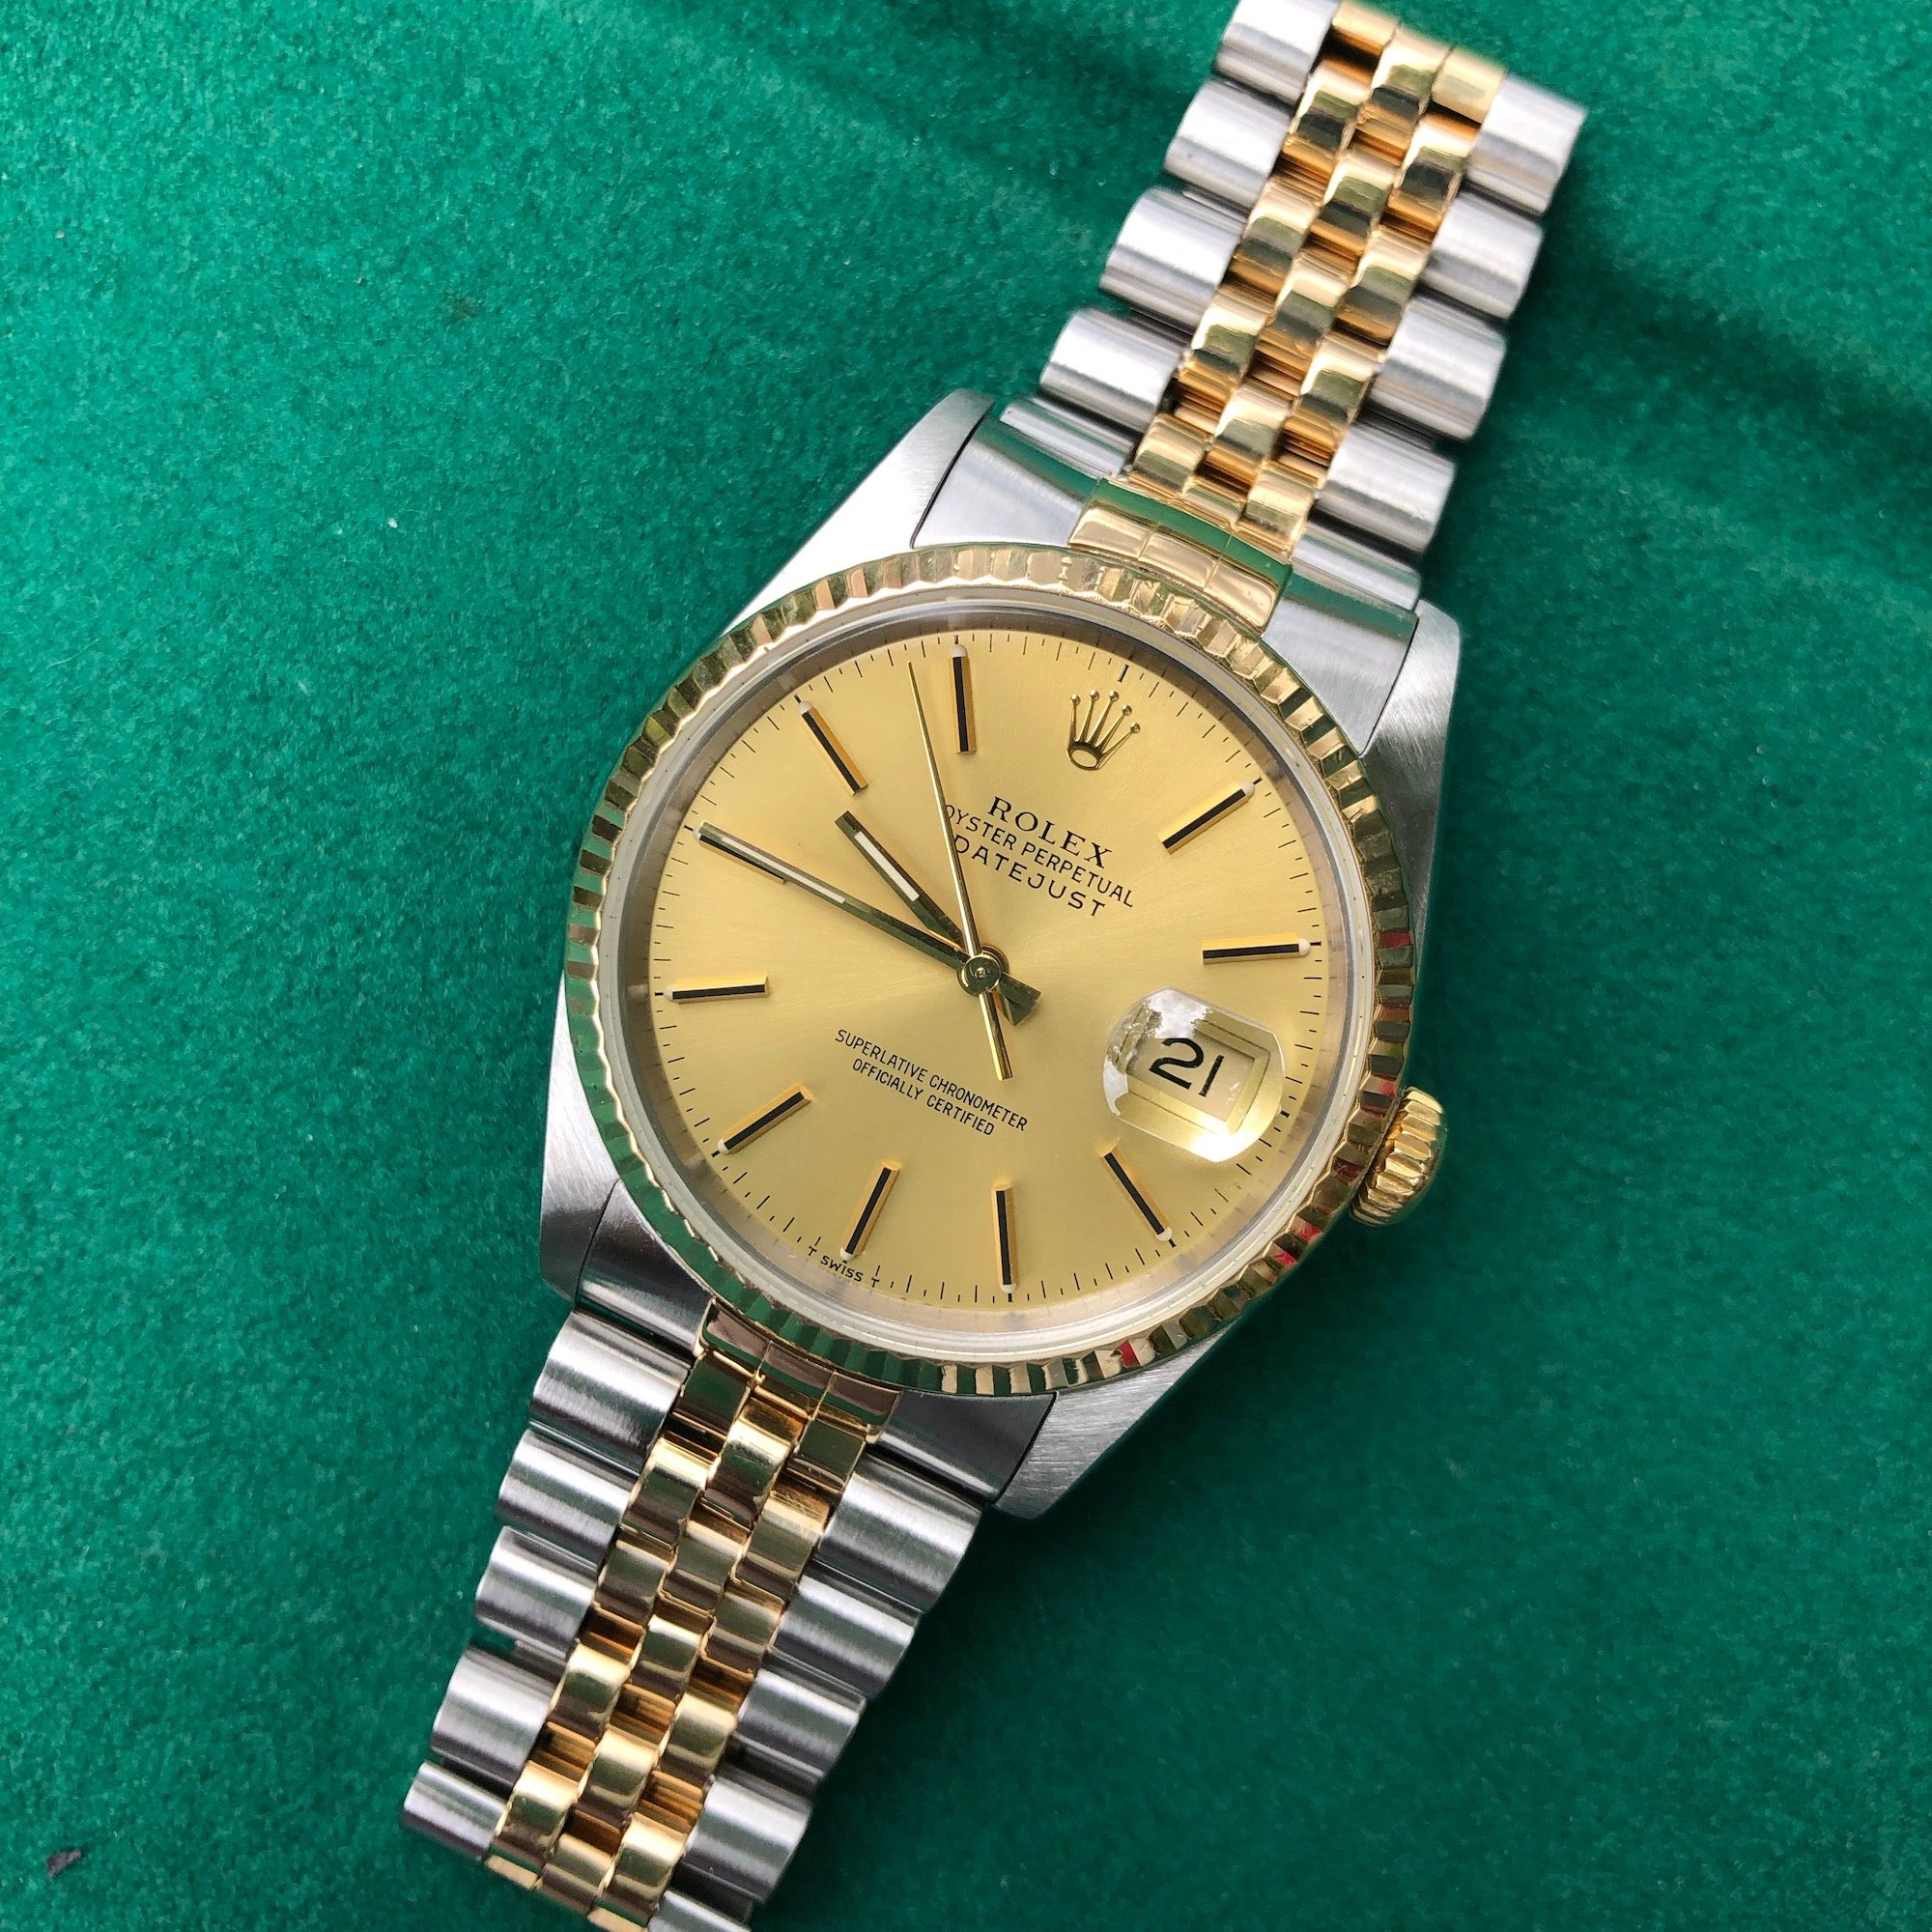 Rolex Datejust 16233 Two Tone Champagne Stick Automatic Wristwatch Box Papers Circa 1990 - Hashtag Watch Company